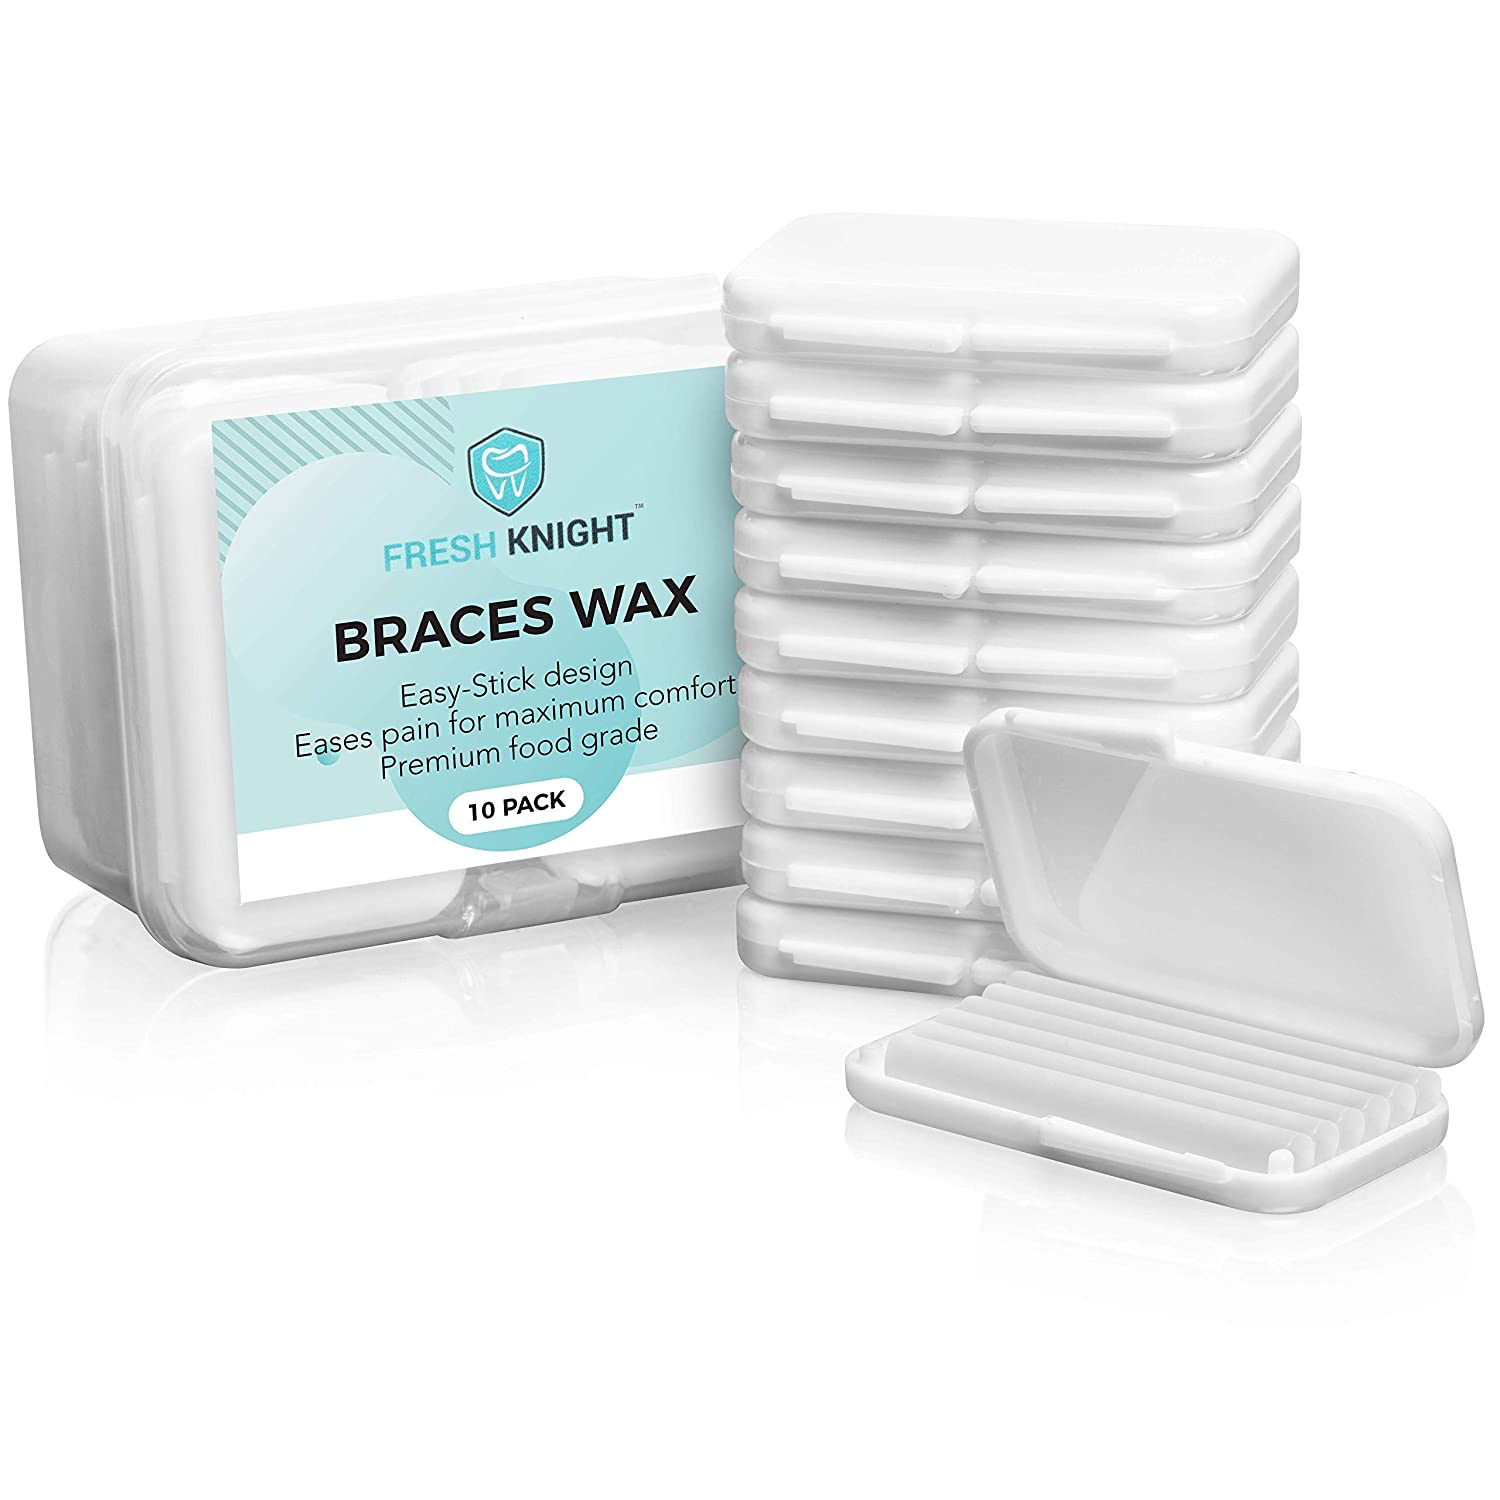 Braces Wax,10 Pack White Cases. Dental Wax for Braces. Unscented & Flavorless - Premium Orthodontic Wax for Braces.10 Pack- 50 Total Wax Strips, FREE Storage Case. Food Grade Brace Wax.